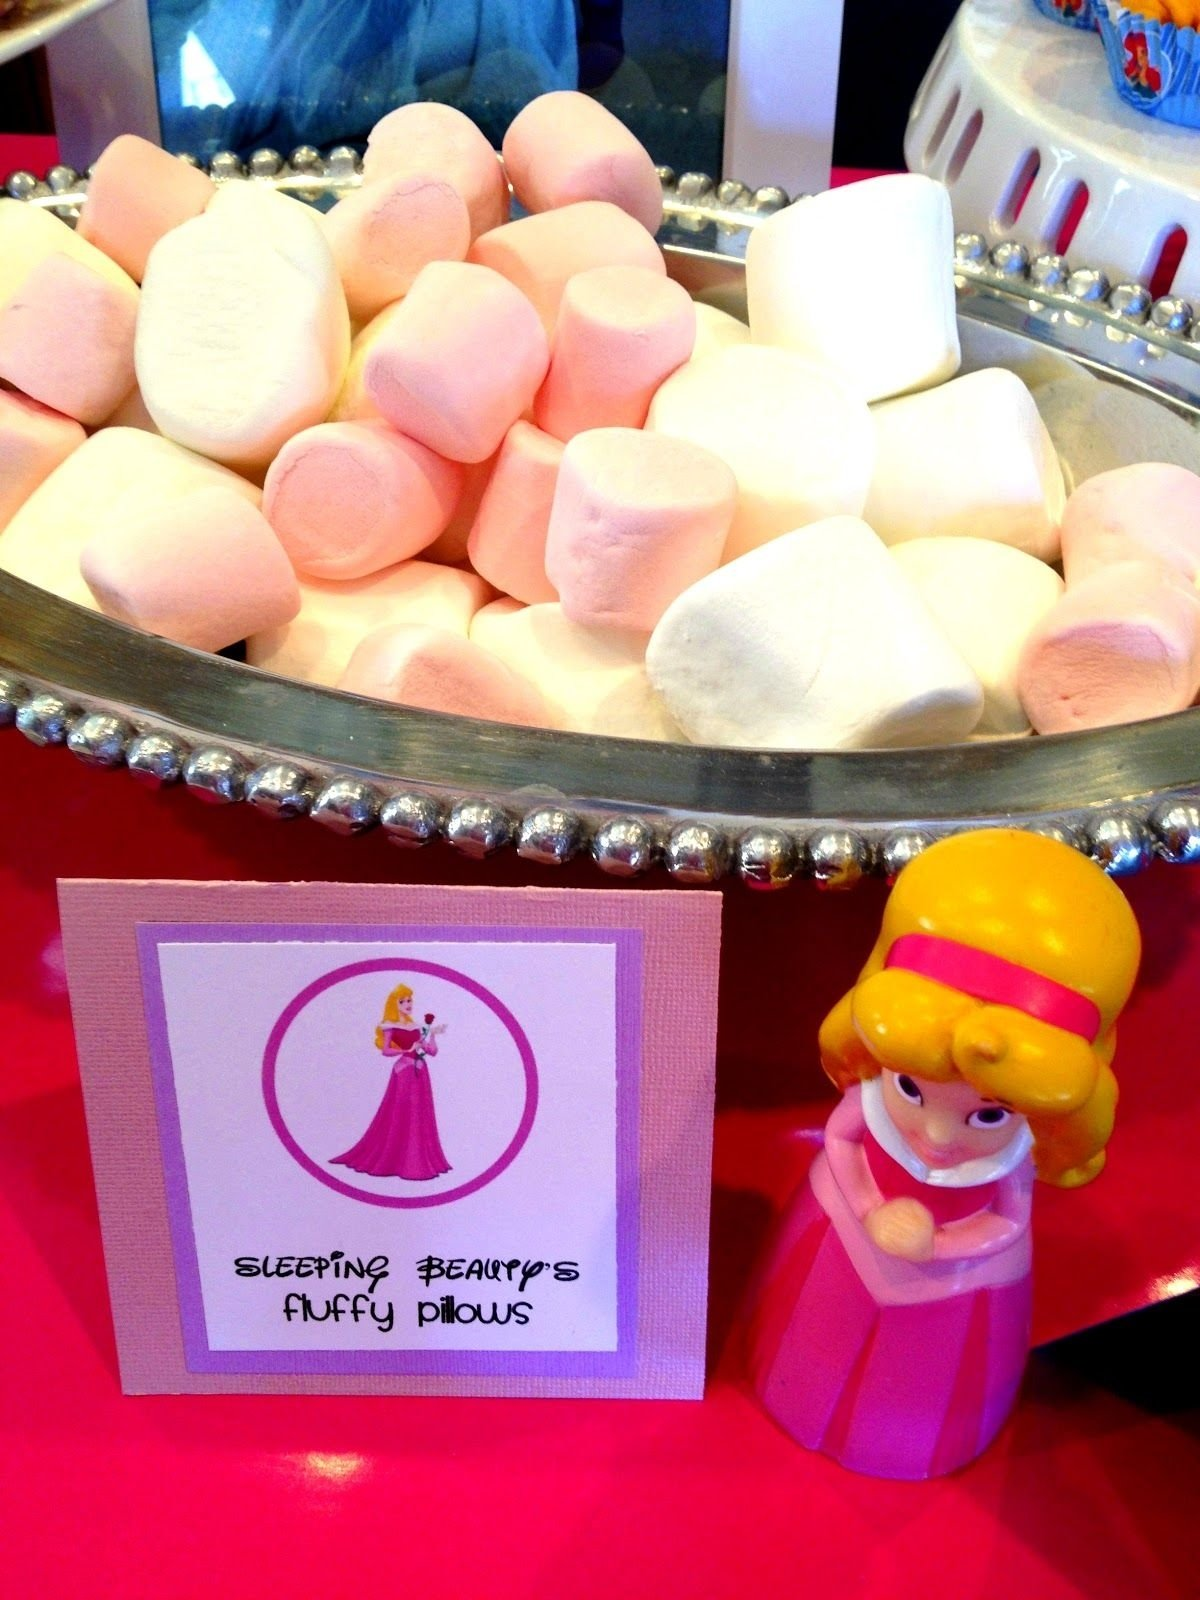 10 Attractive Disney Princess Party Food Ideas princess party ideas snacks and more so cute princess nykas puffy 1 2020